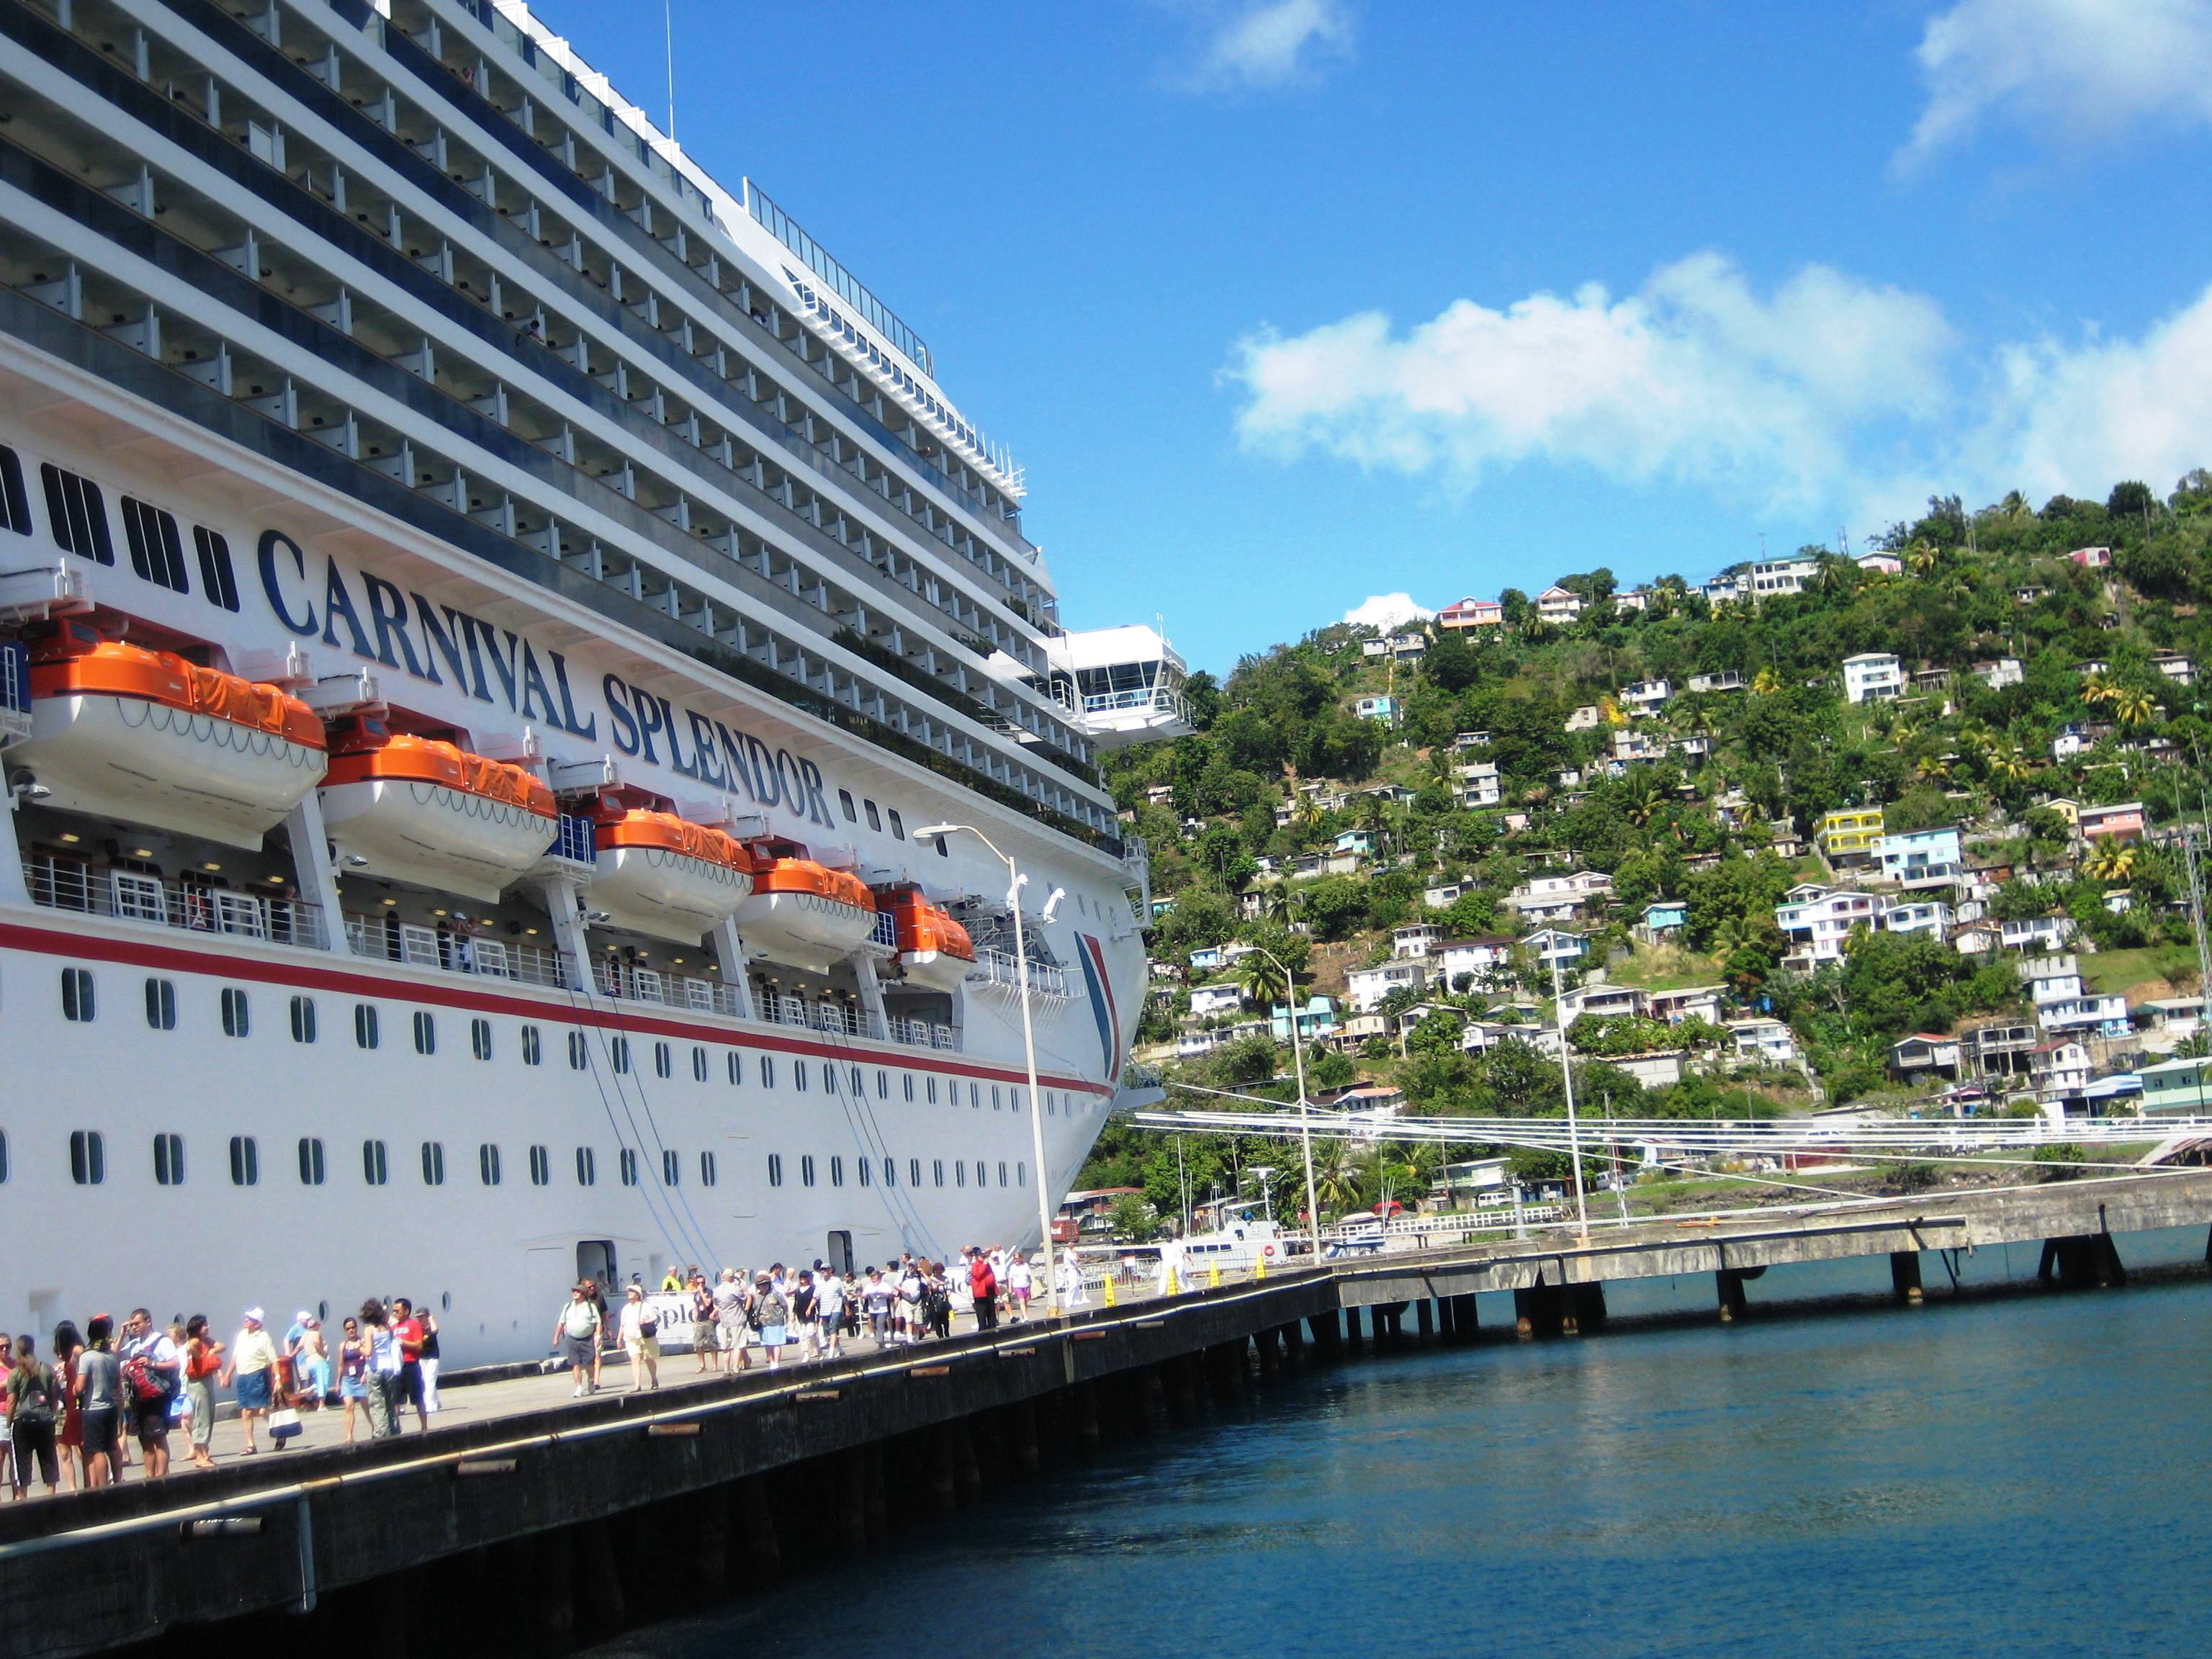 the-carnival-splendor-docked-in-dominica